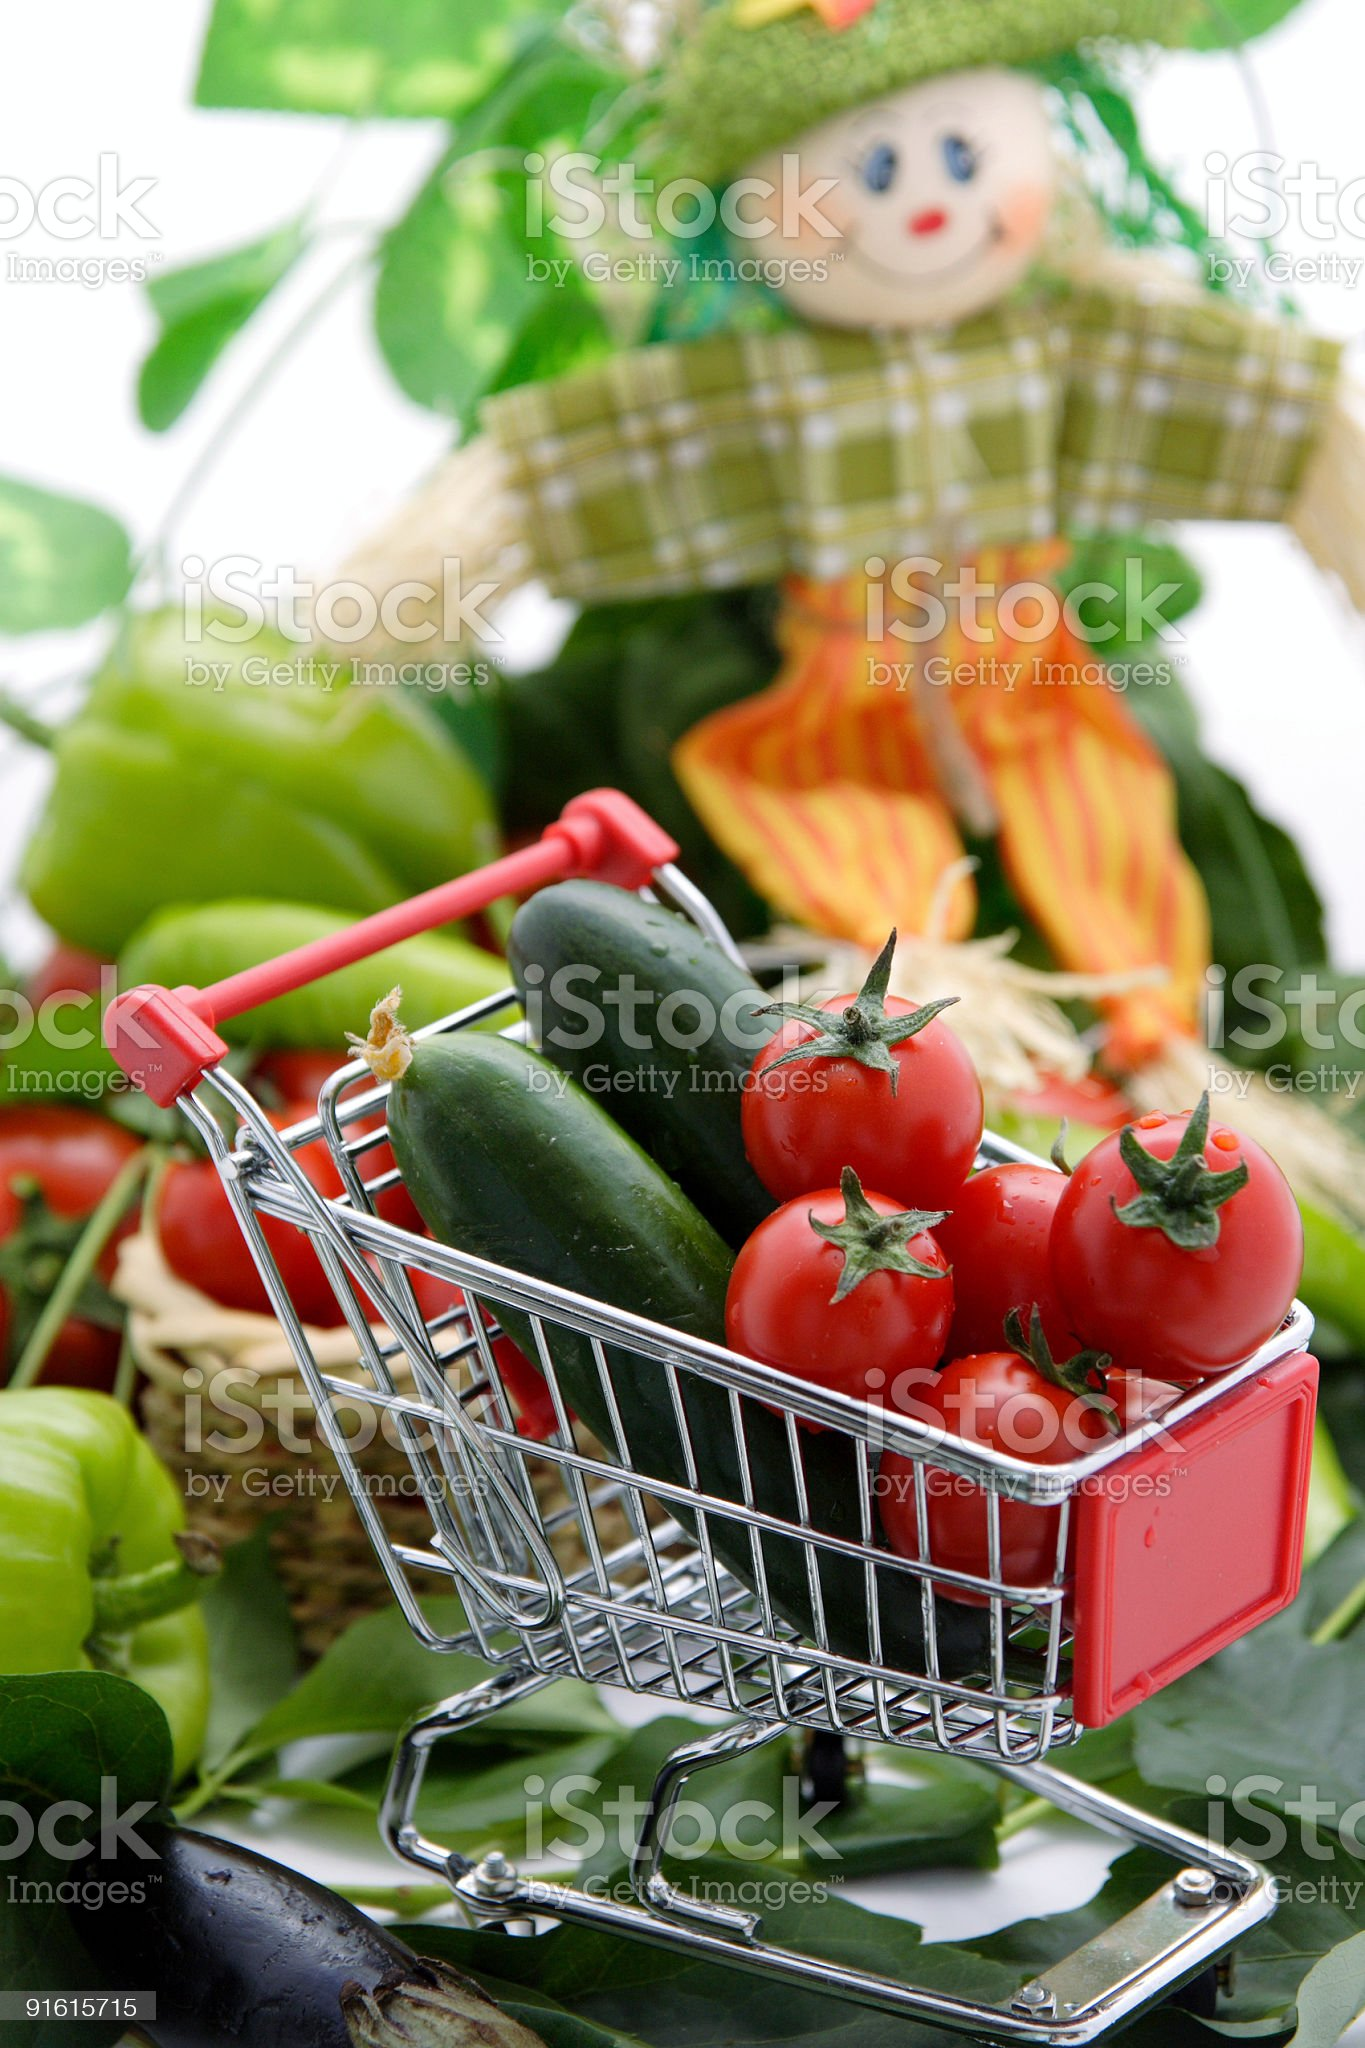 Shopping cart royalty-free stock photo